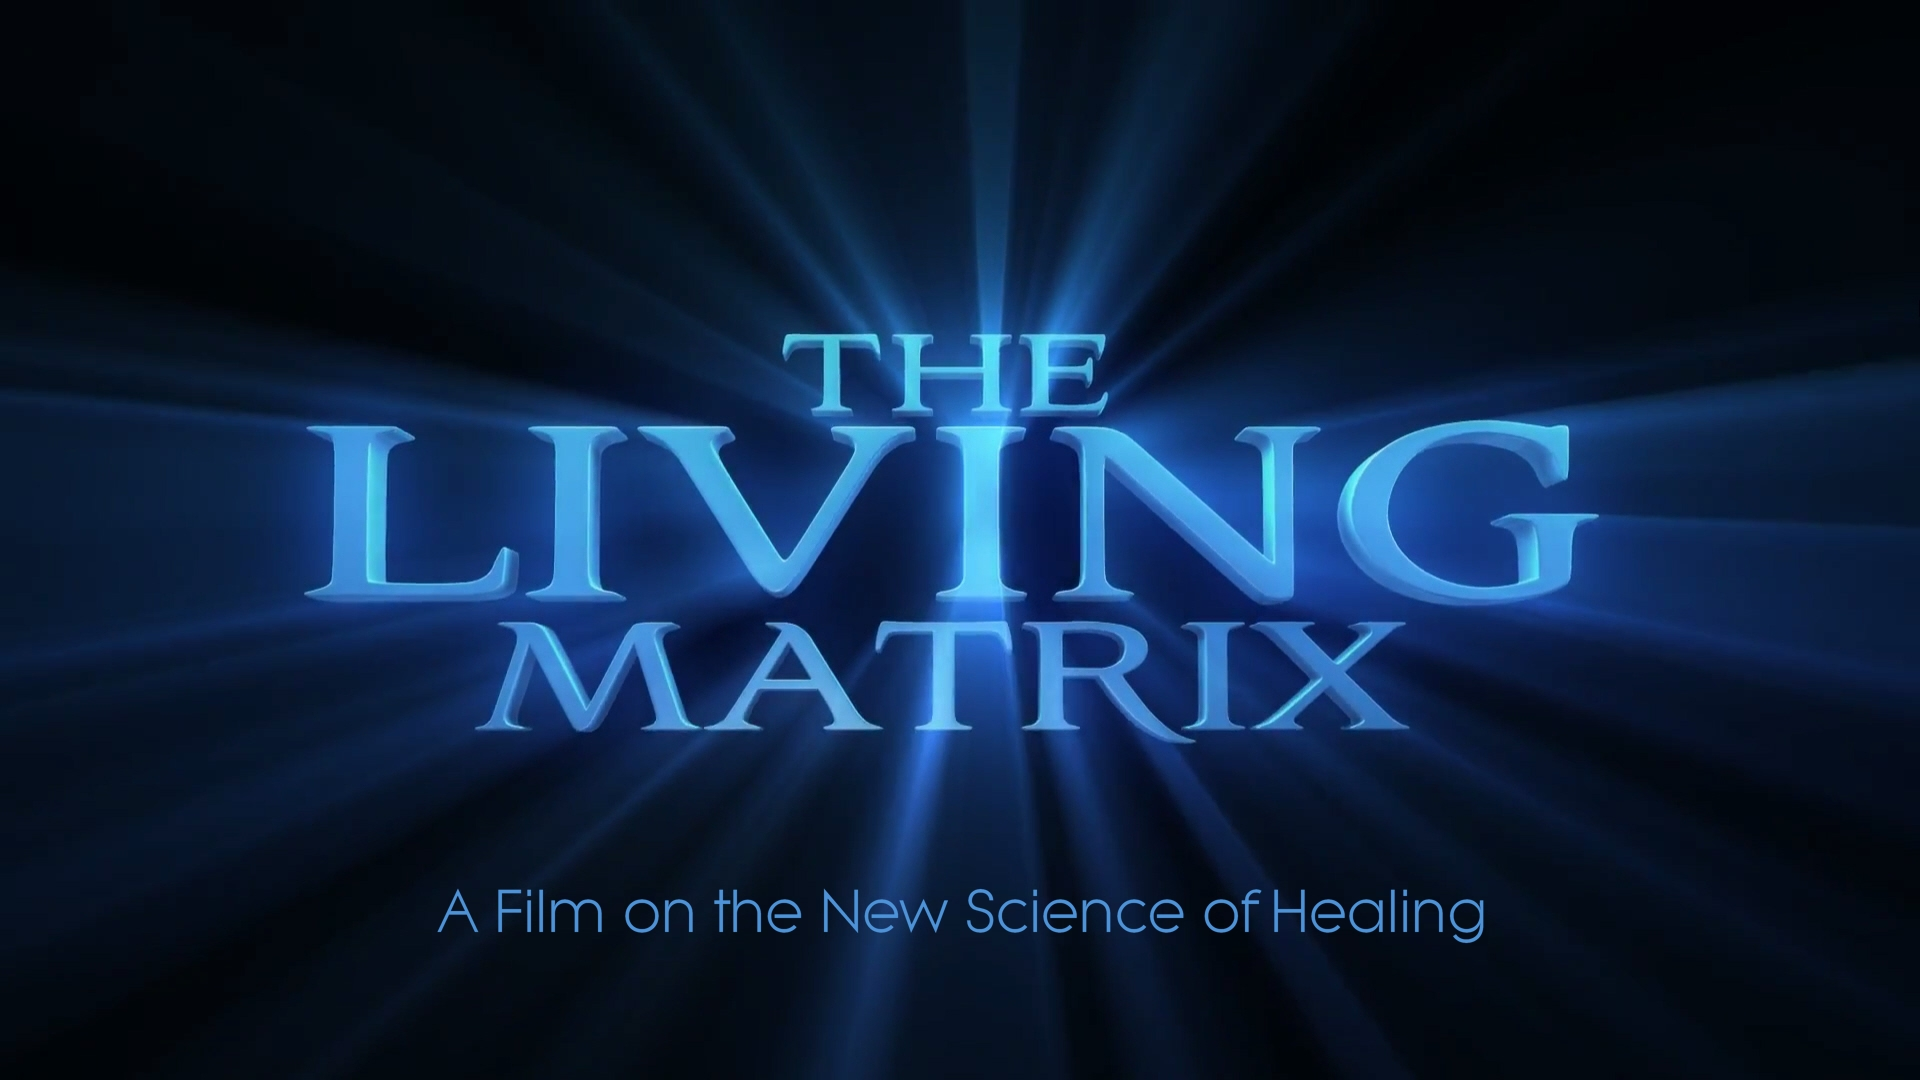 The living matrix movie - a film about the science of information as medicine.